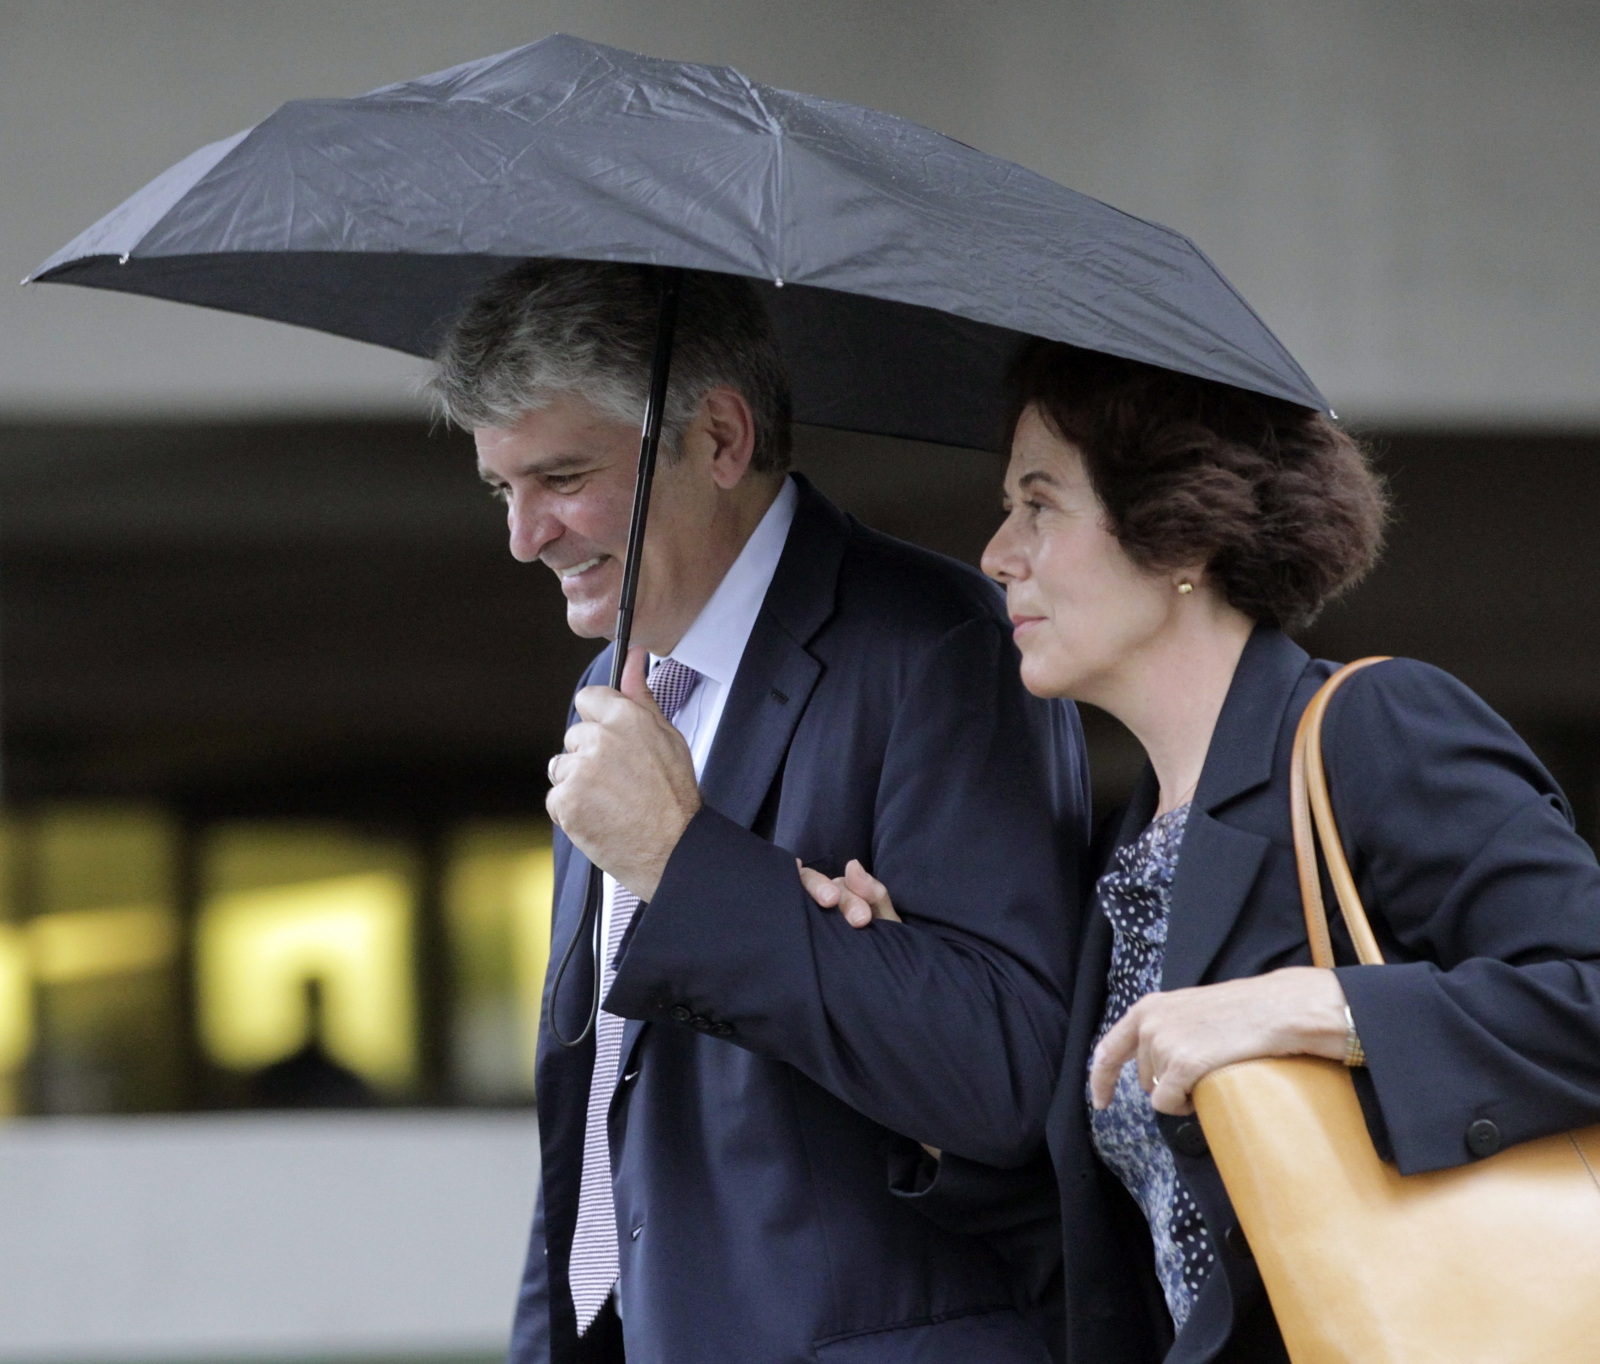 Former UBS banker Raoul Weil, accompanied by his wife Susan Lerch Weil, arrives at federal court in Fort Lauderdale, Florida